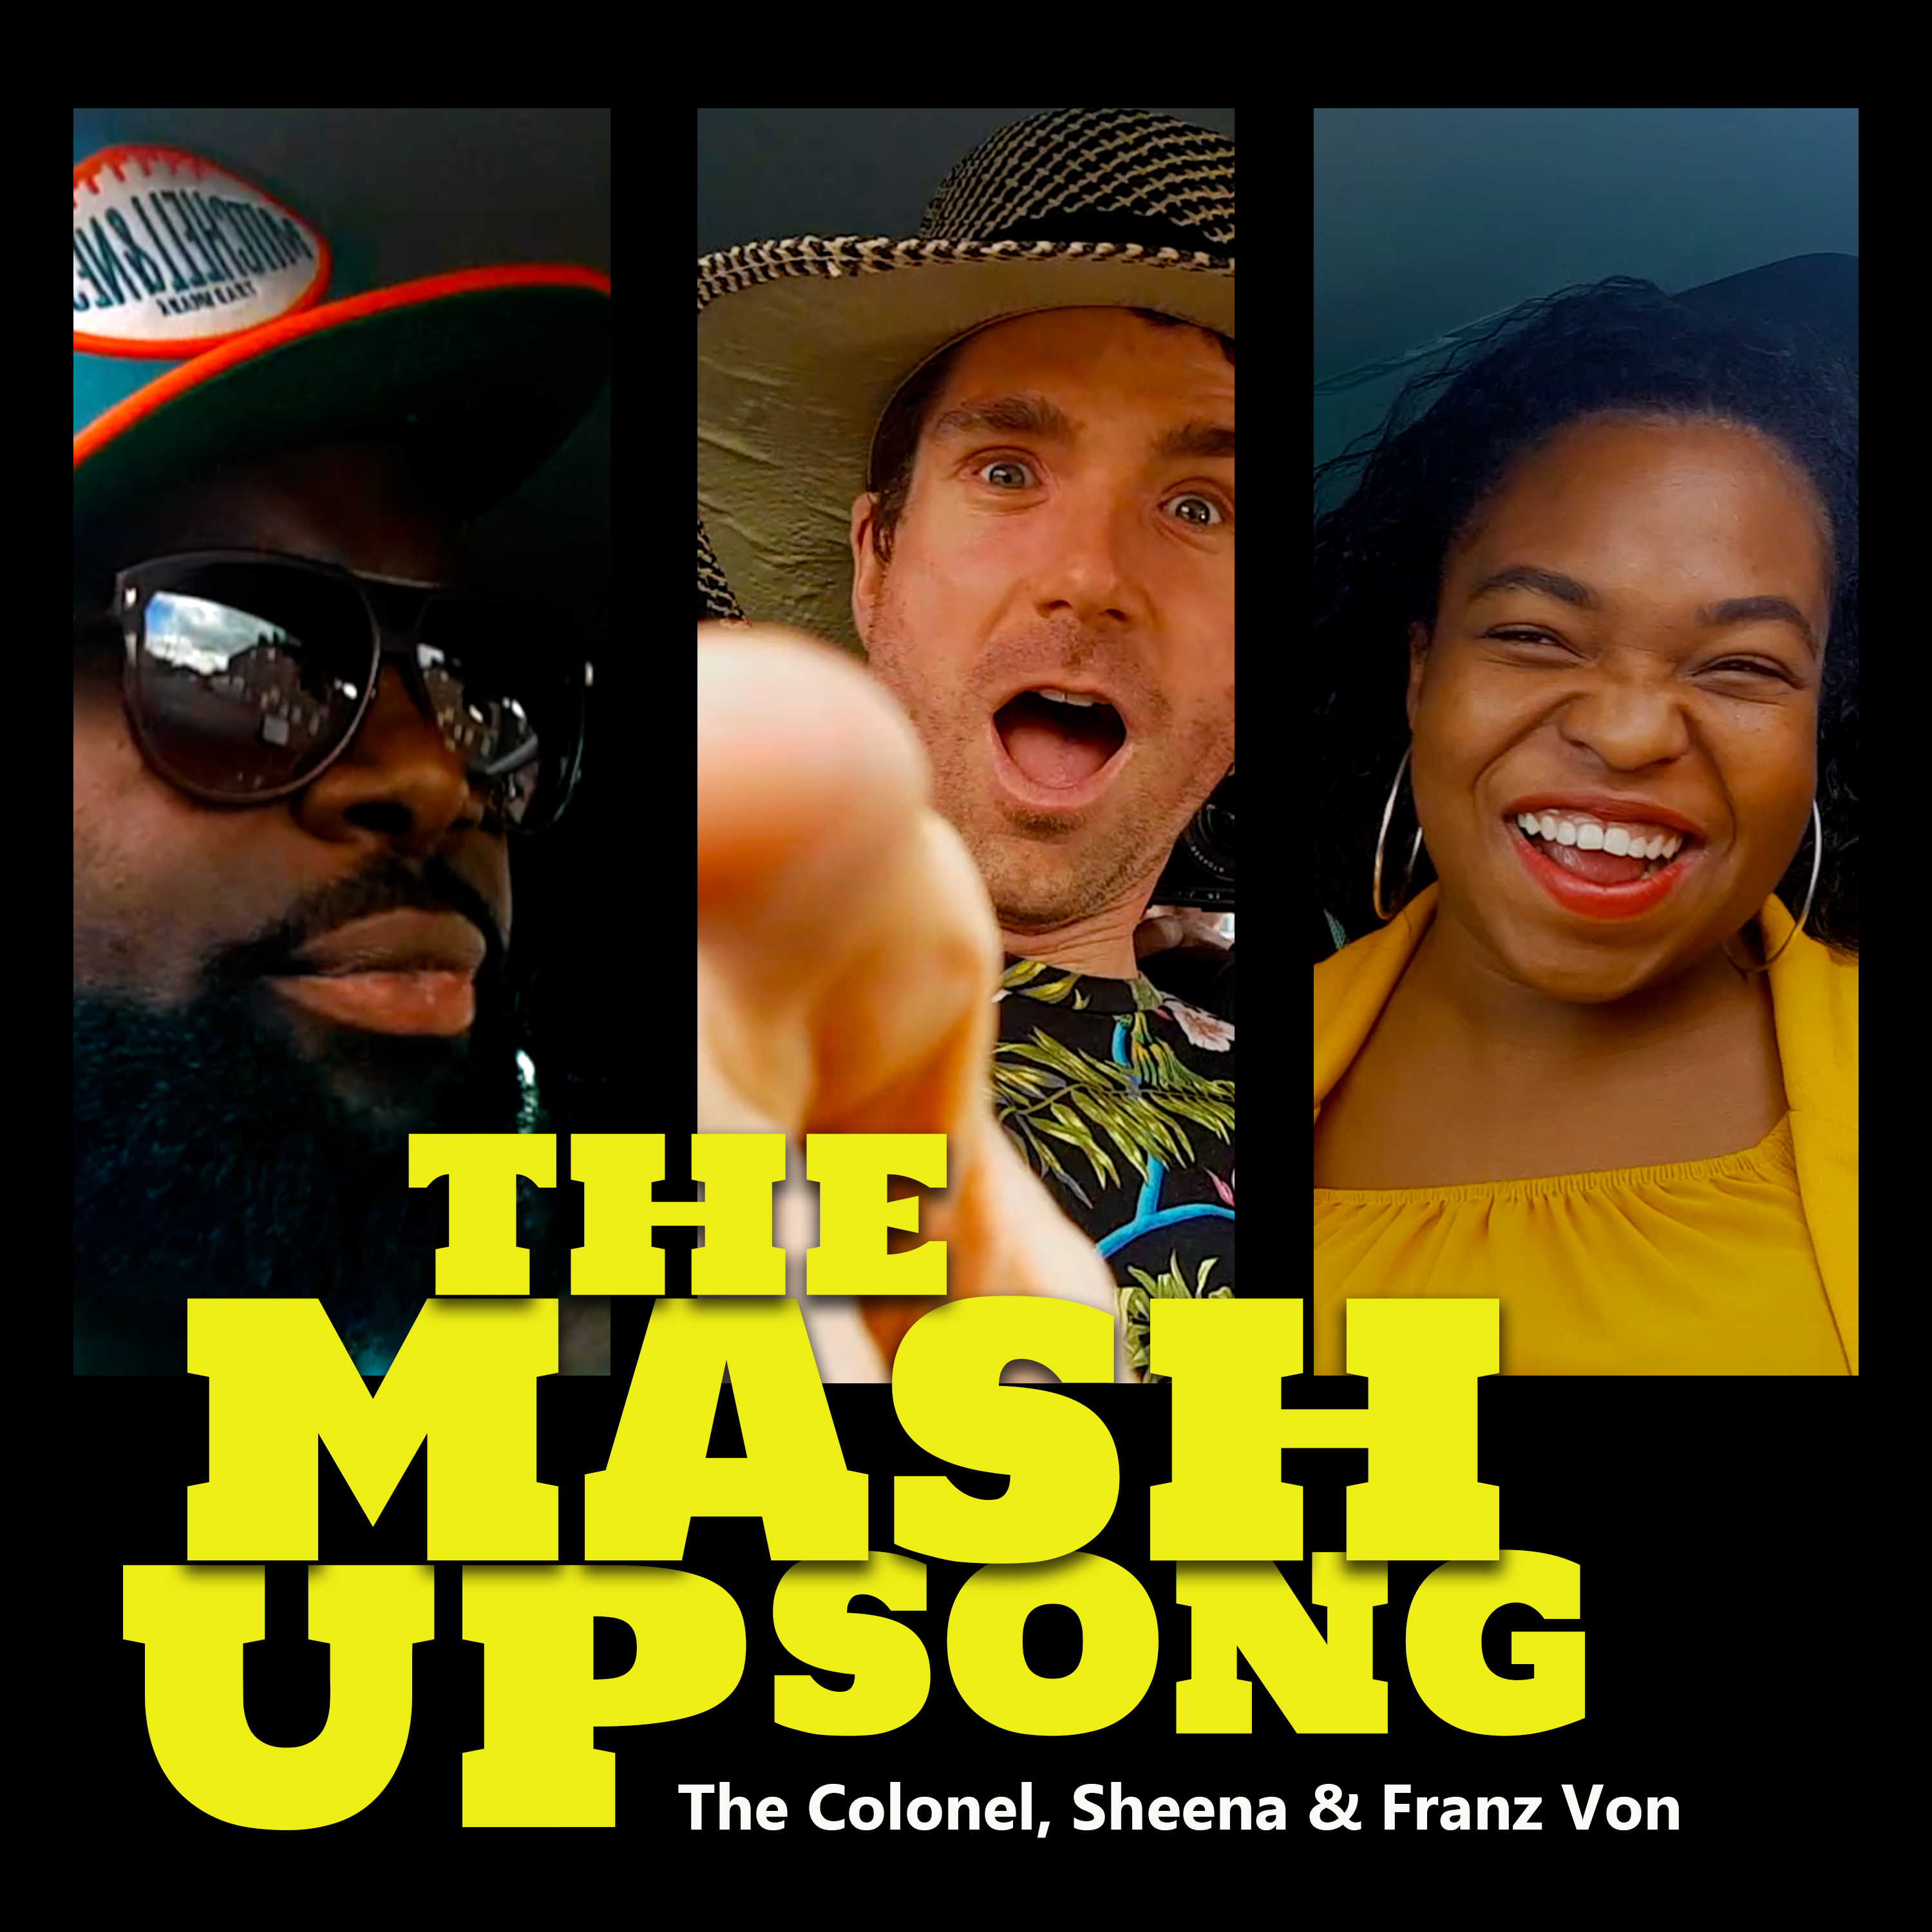 The Colonel, Sheena & Franz Von - 'The Mash Up Song' - Cover Art